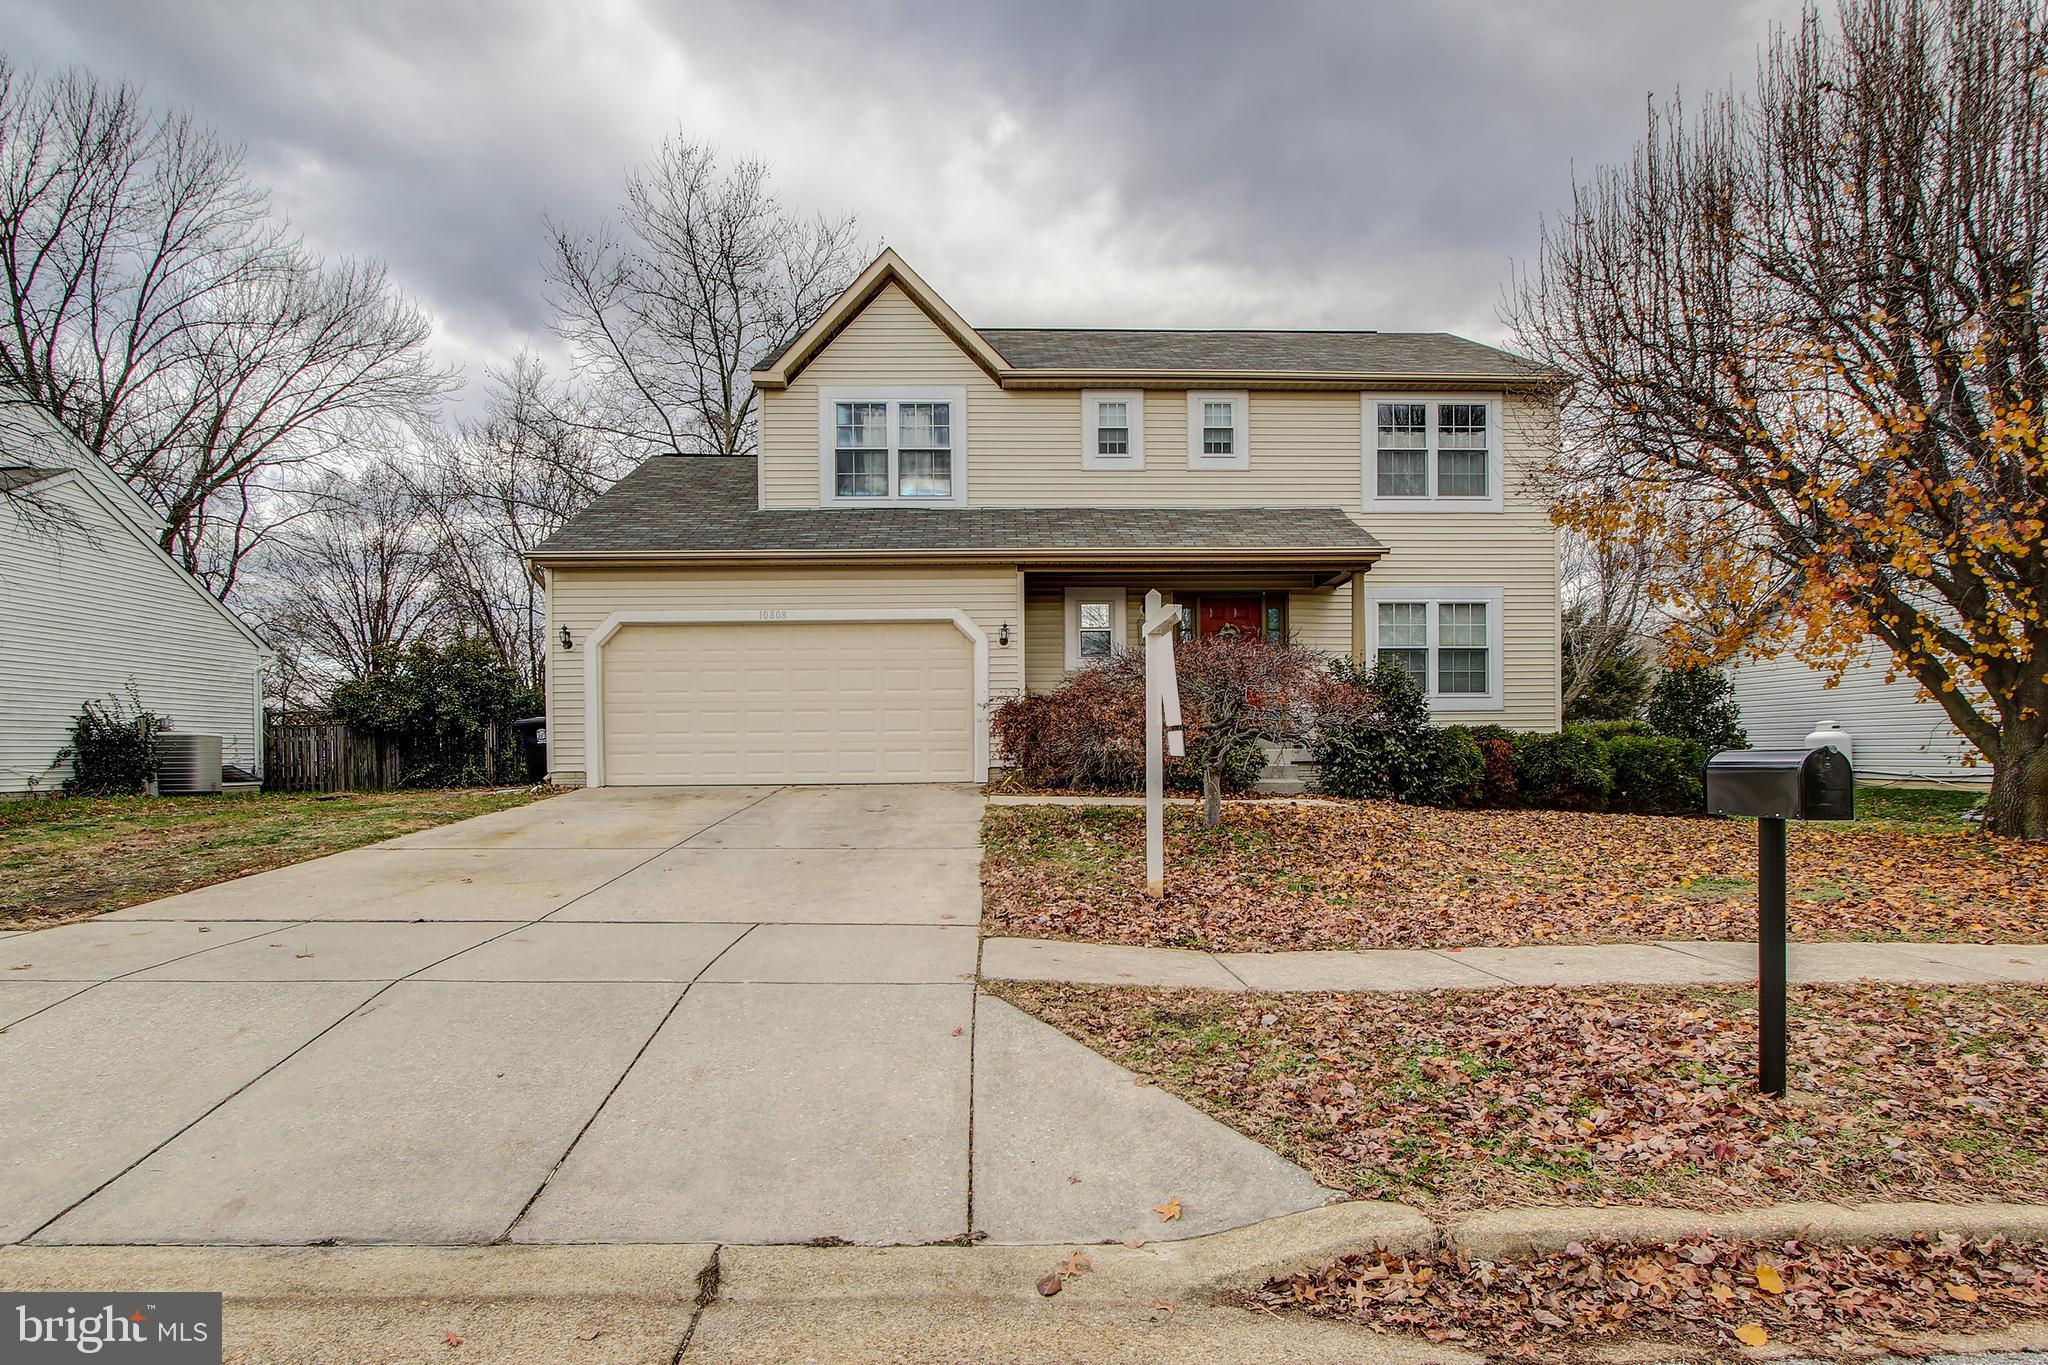 TURN-KEY ready and available for immediate possession in a quiet well established neighborhood. Come